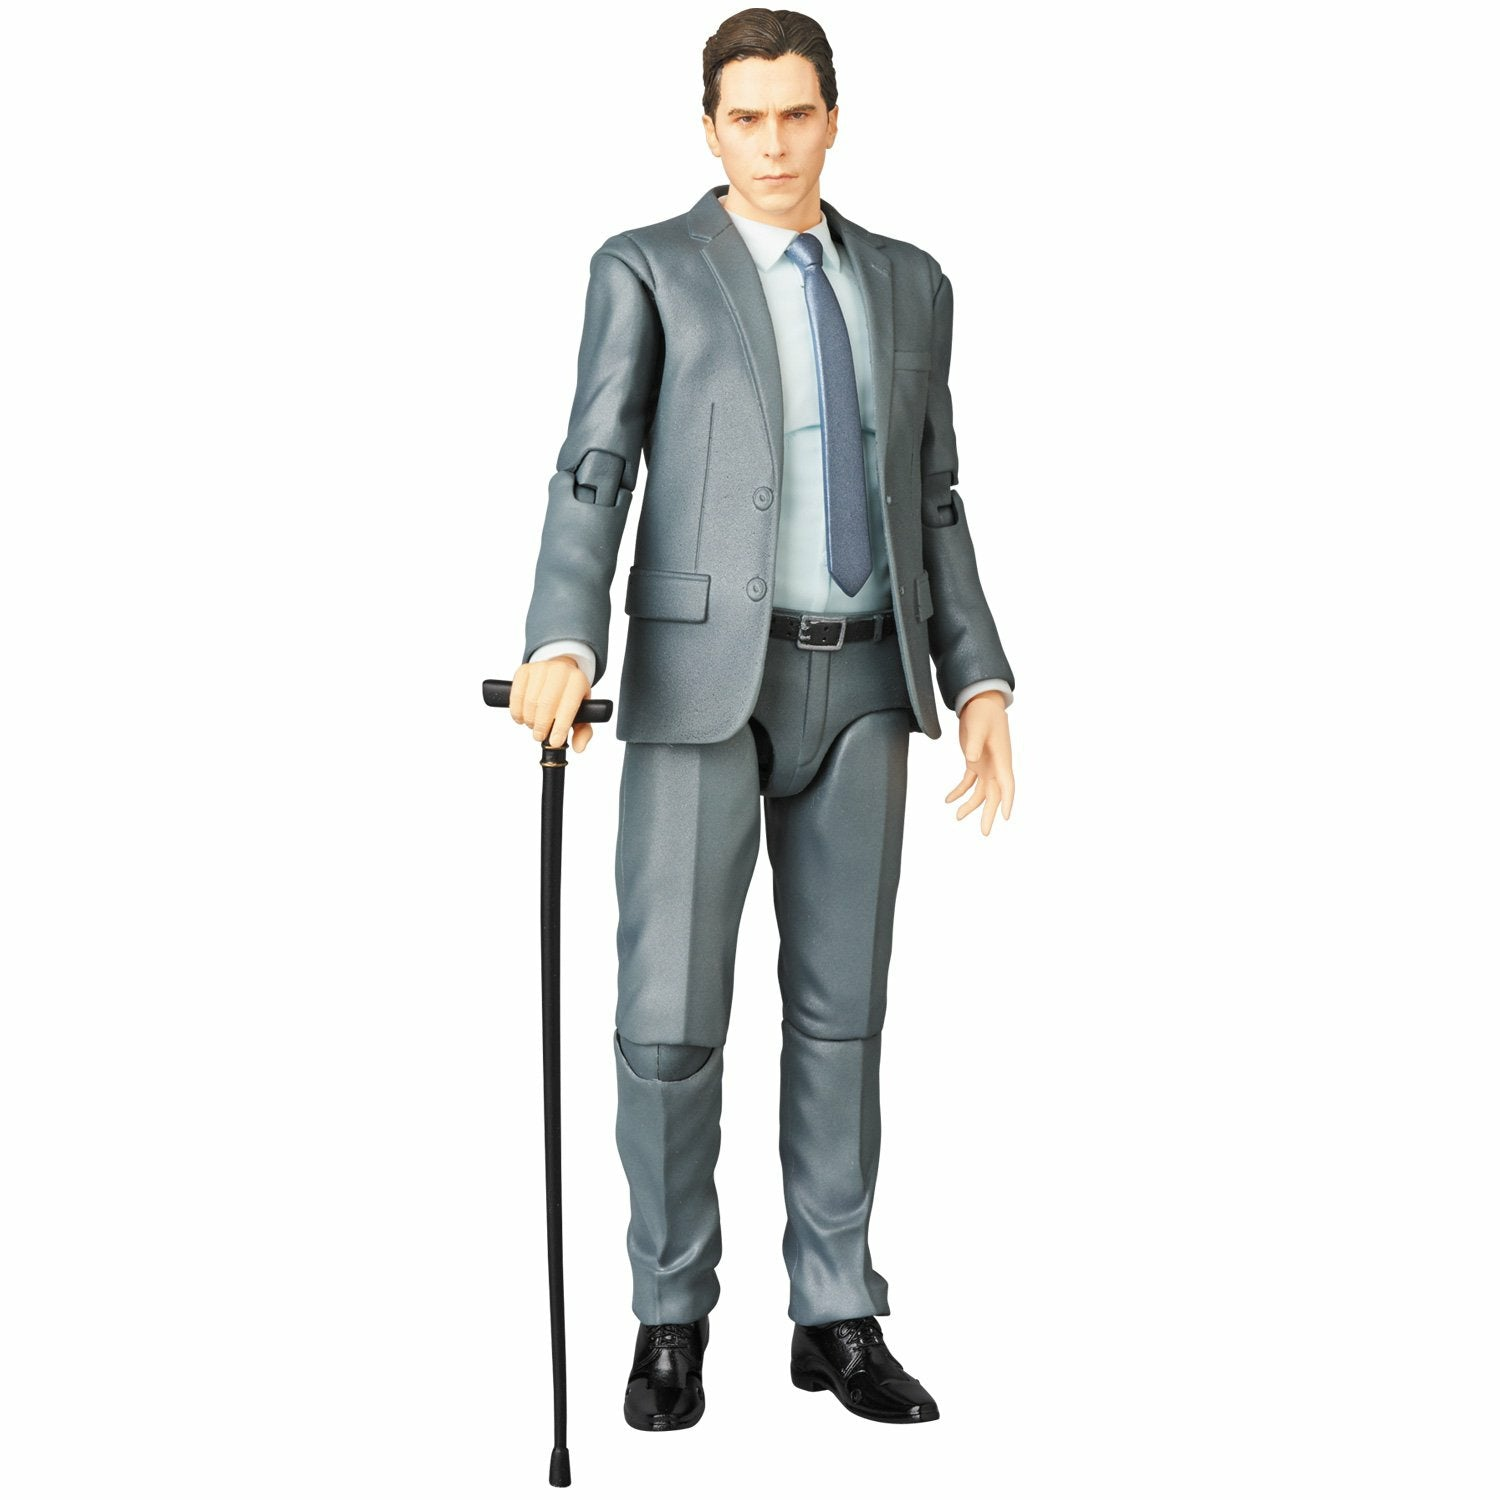 The Dark Knight Bruce Wayne The Dark Knight Trilogy Version Mafex Action Figure